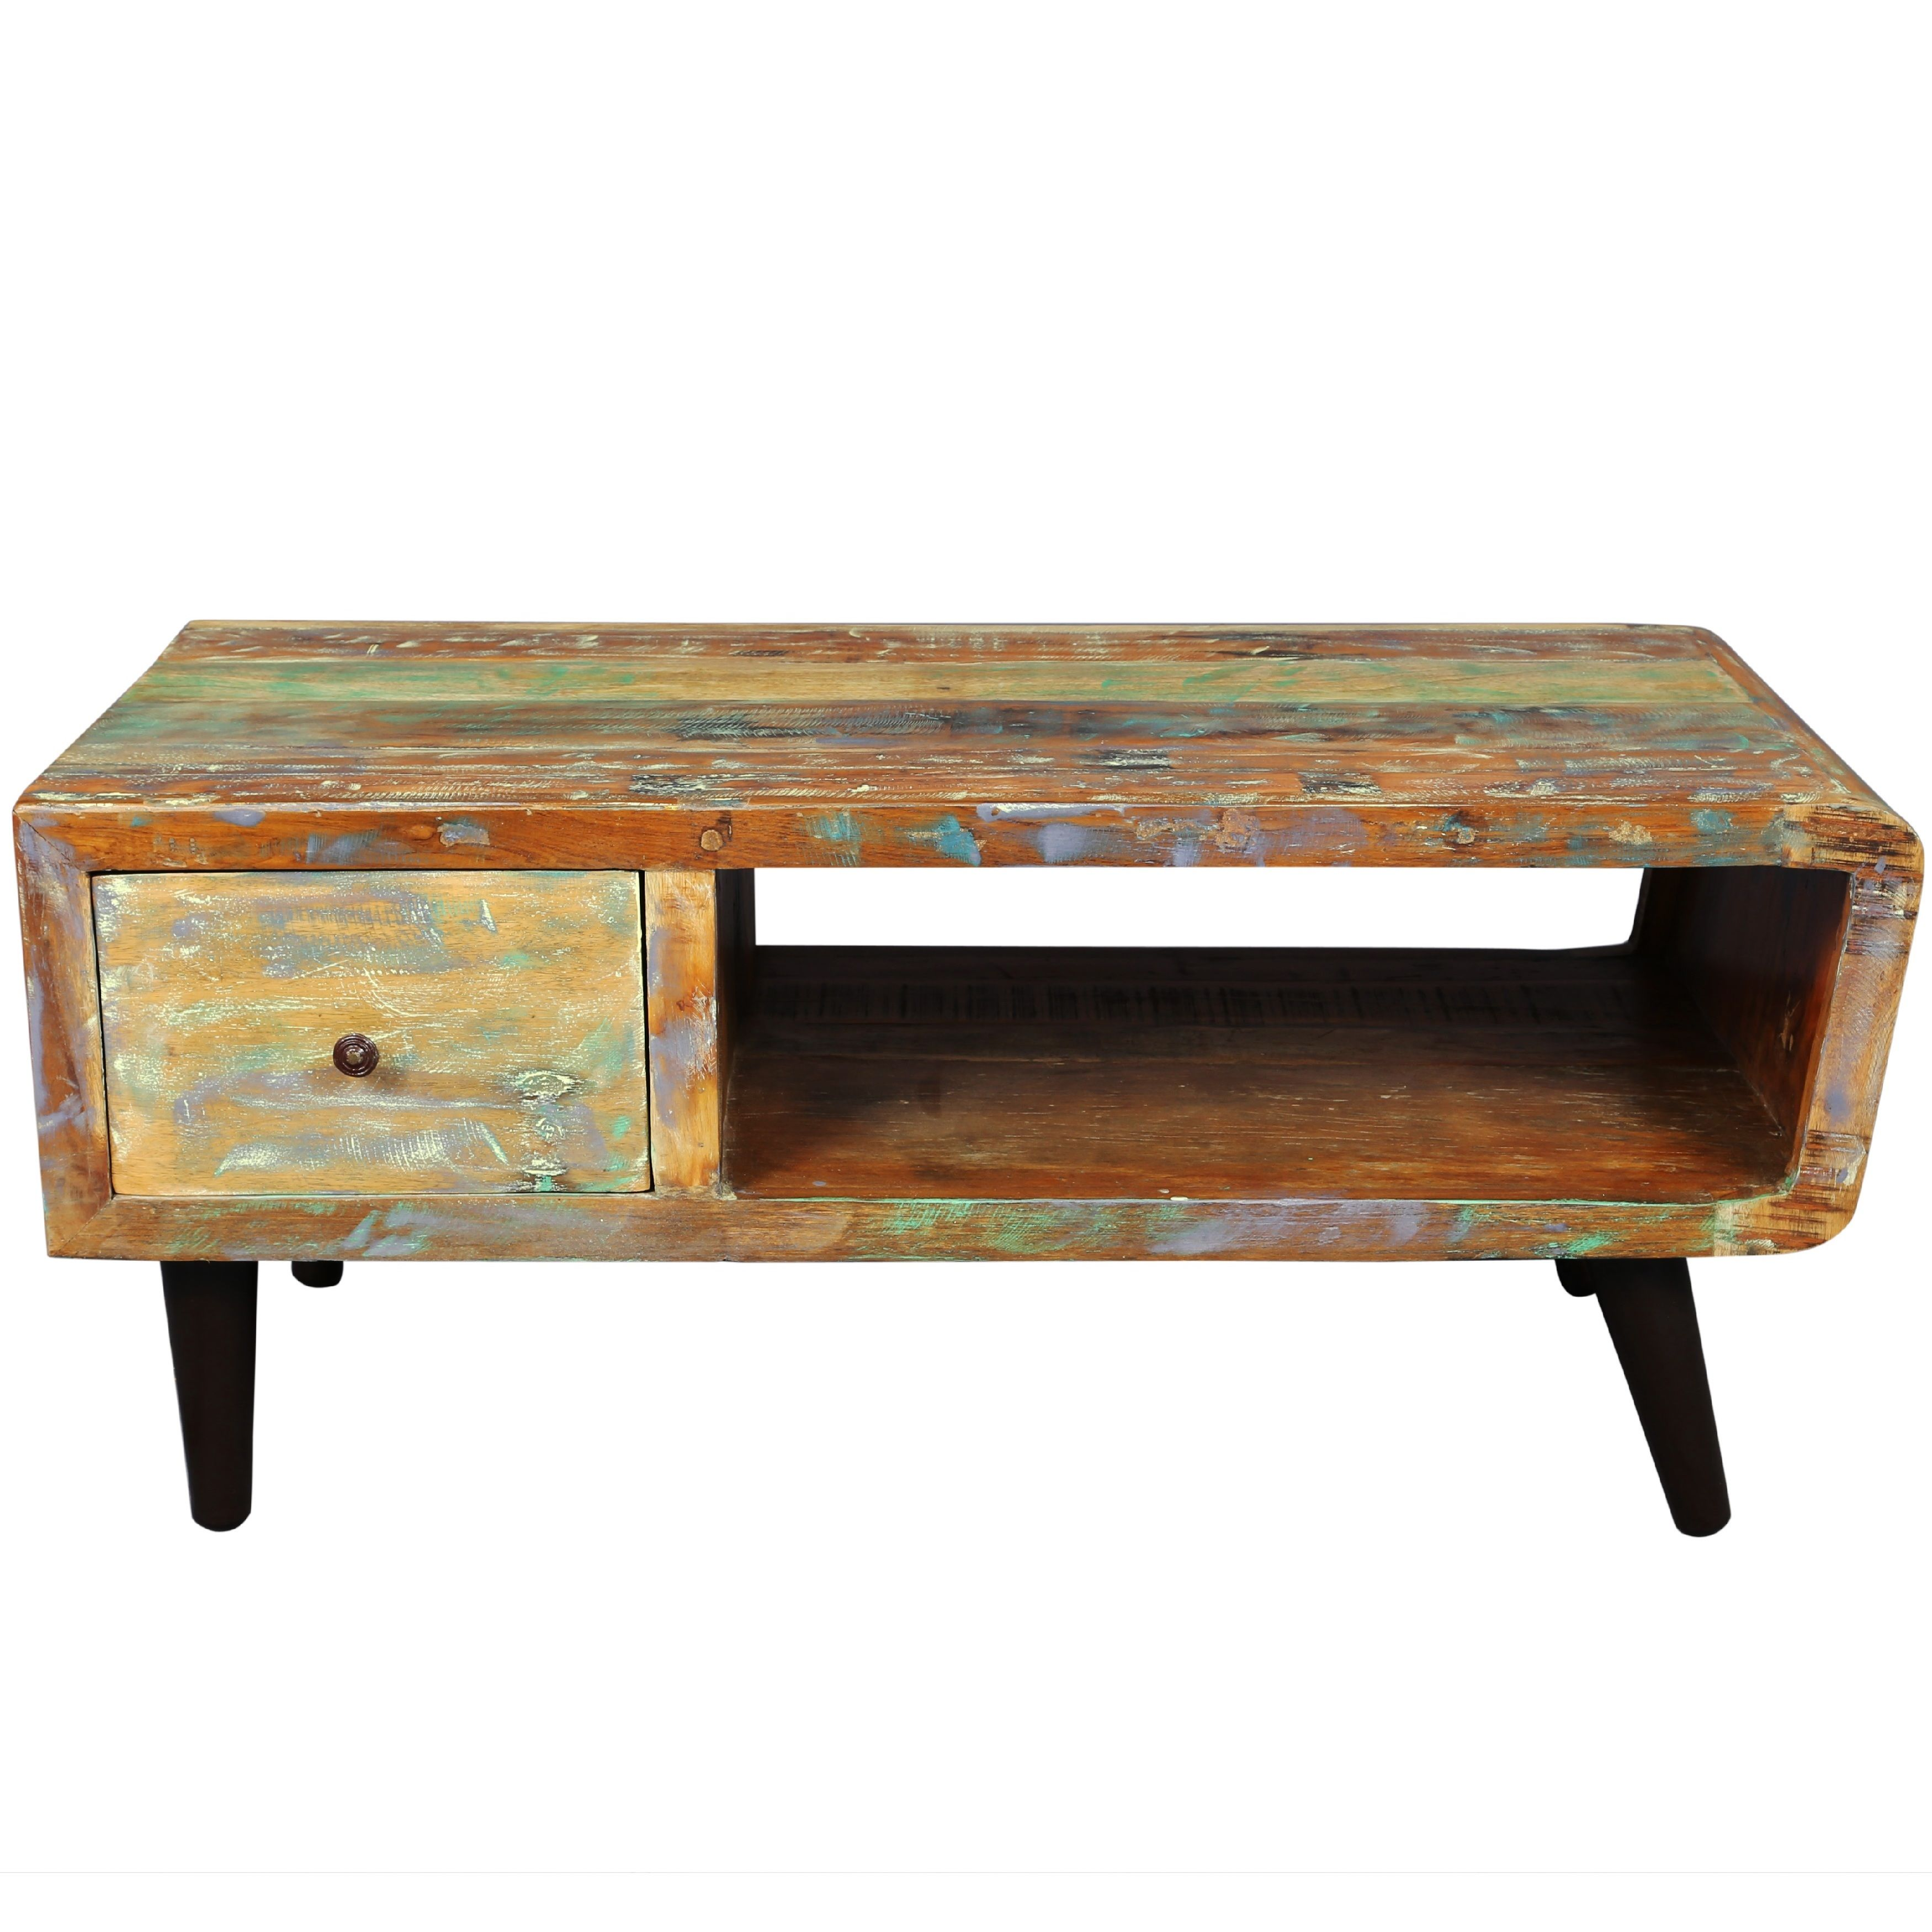 The retro styled route coffee table features one deep drawer and